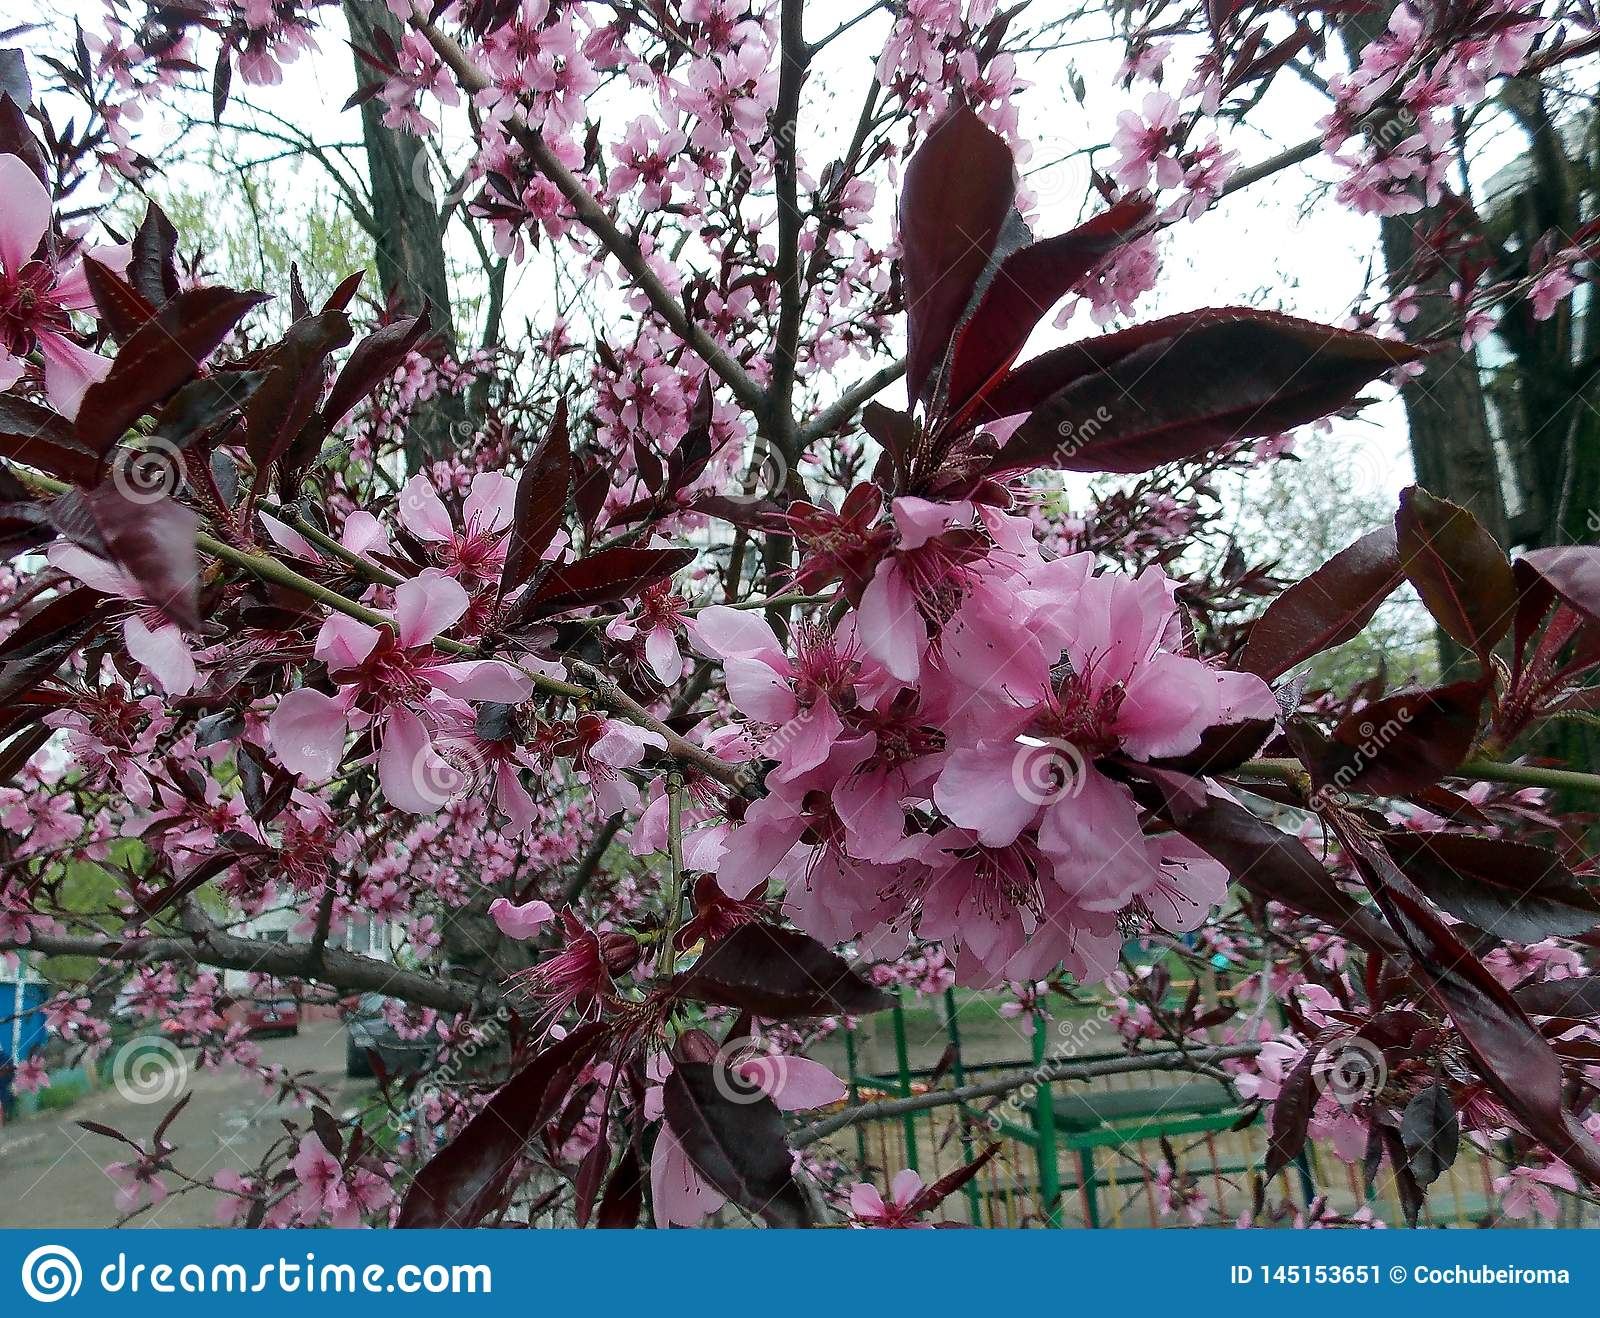 Pink Flower On A Tree With Burgundy Leaves Stock Image Image Of